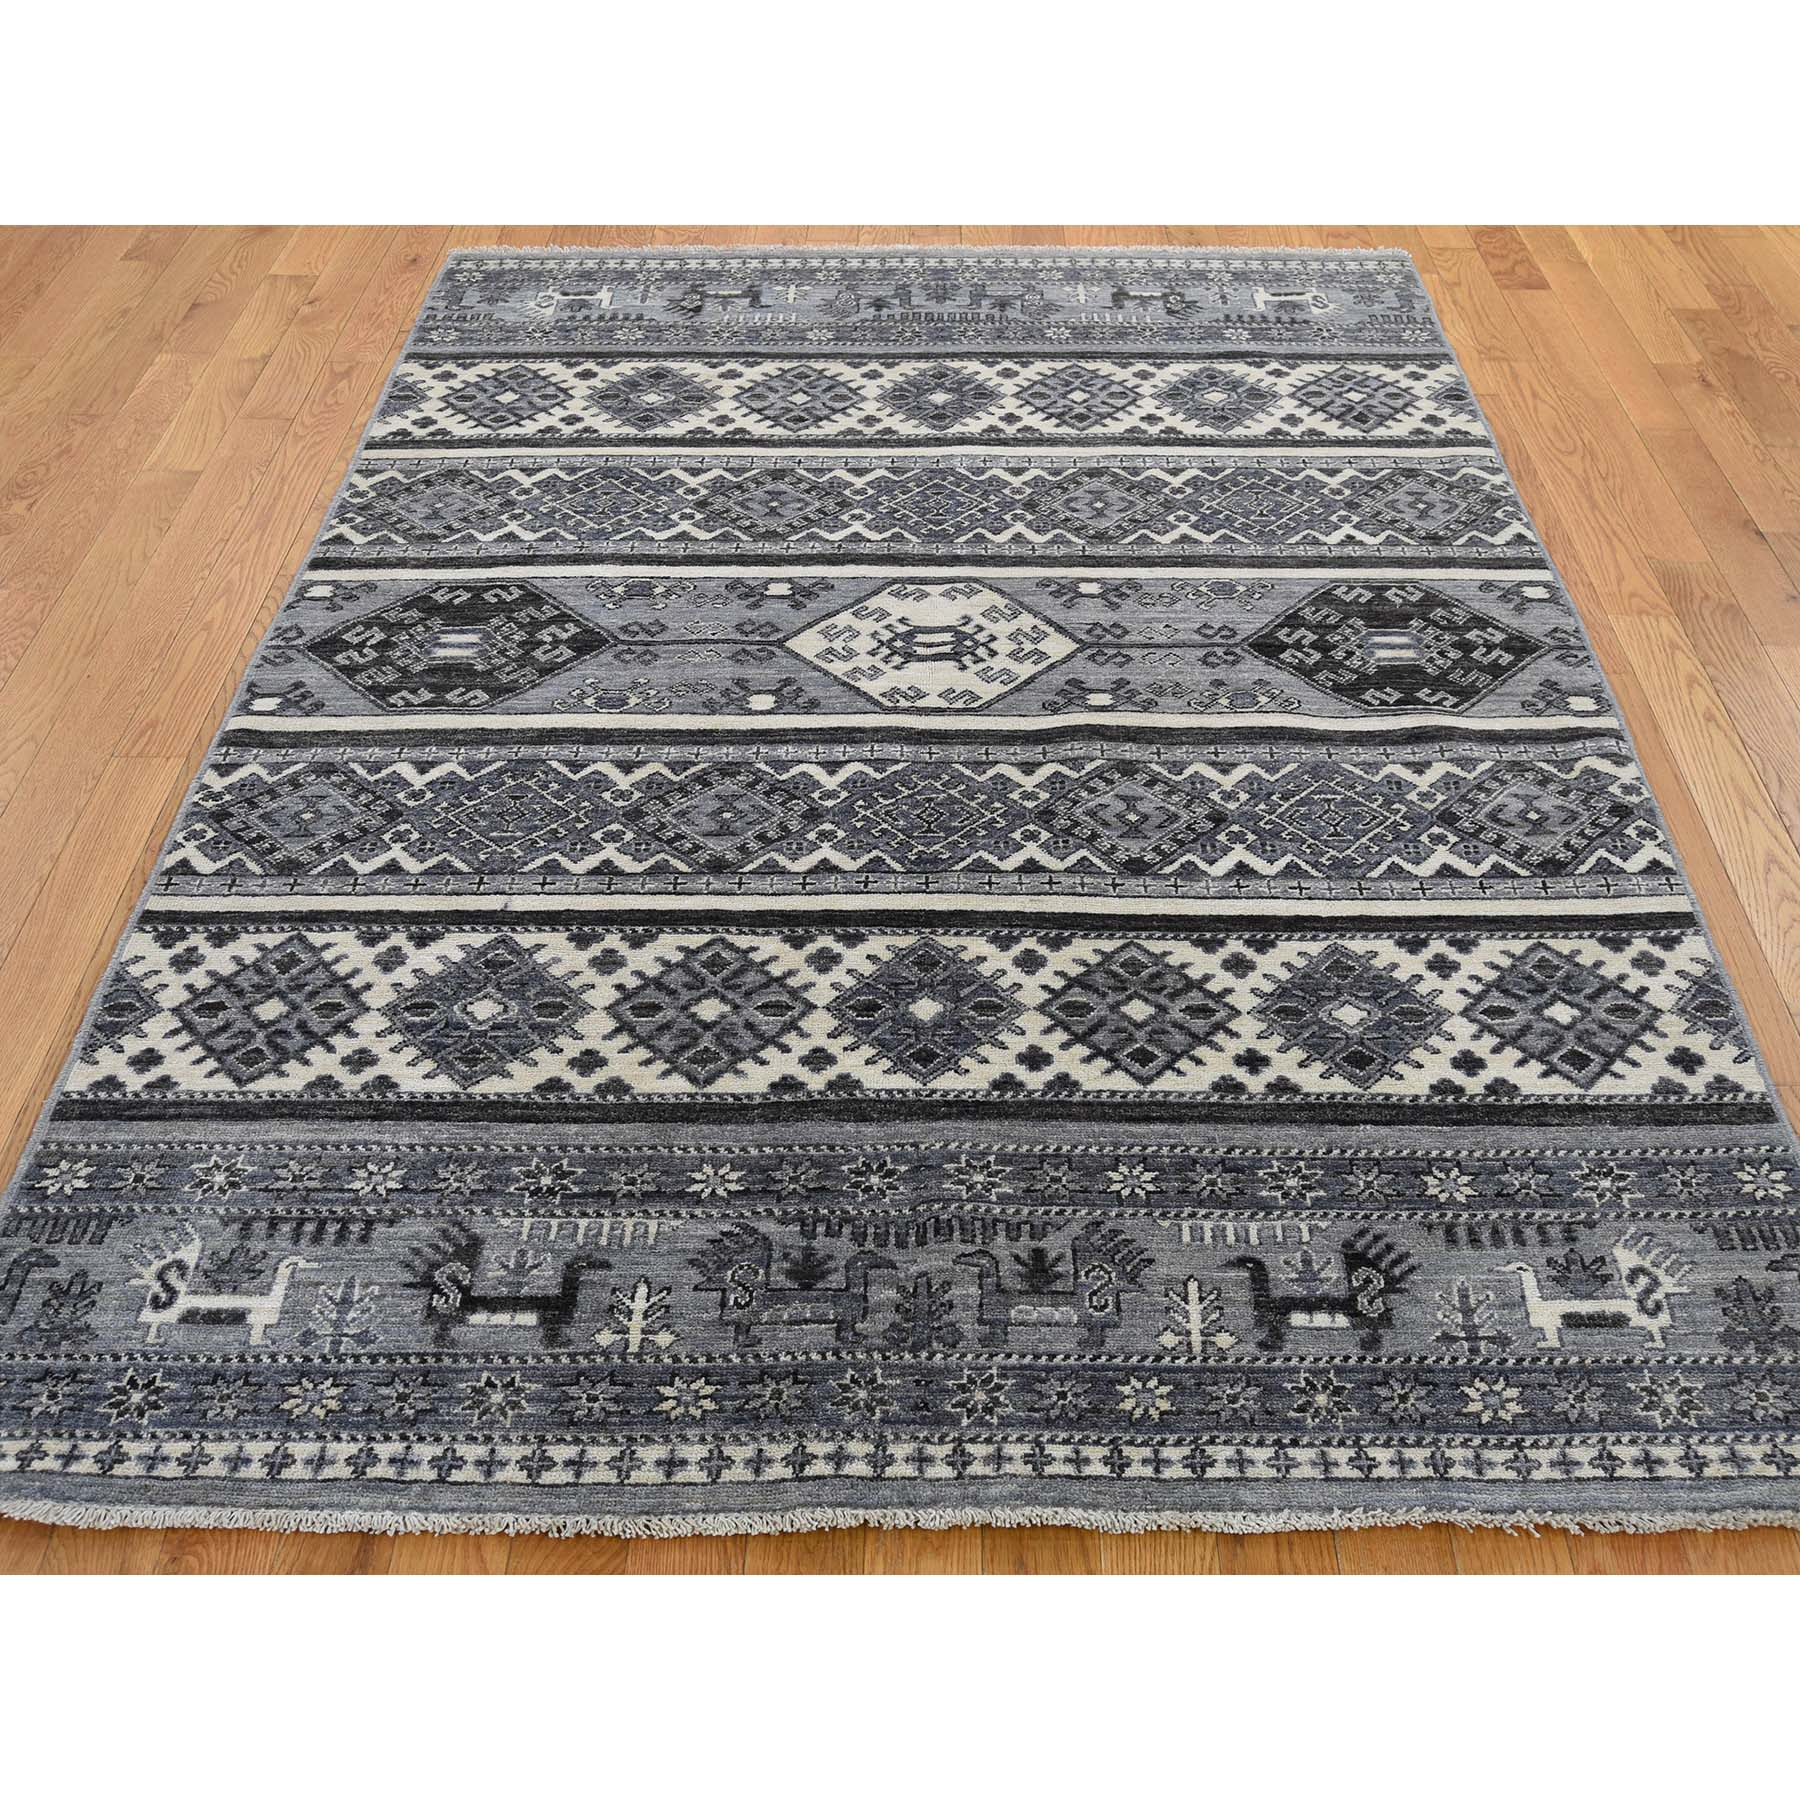 5-x7- Hand-Knotted Natural Colors Super Kazak Khorjin Design Oriental Rug